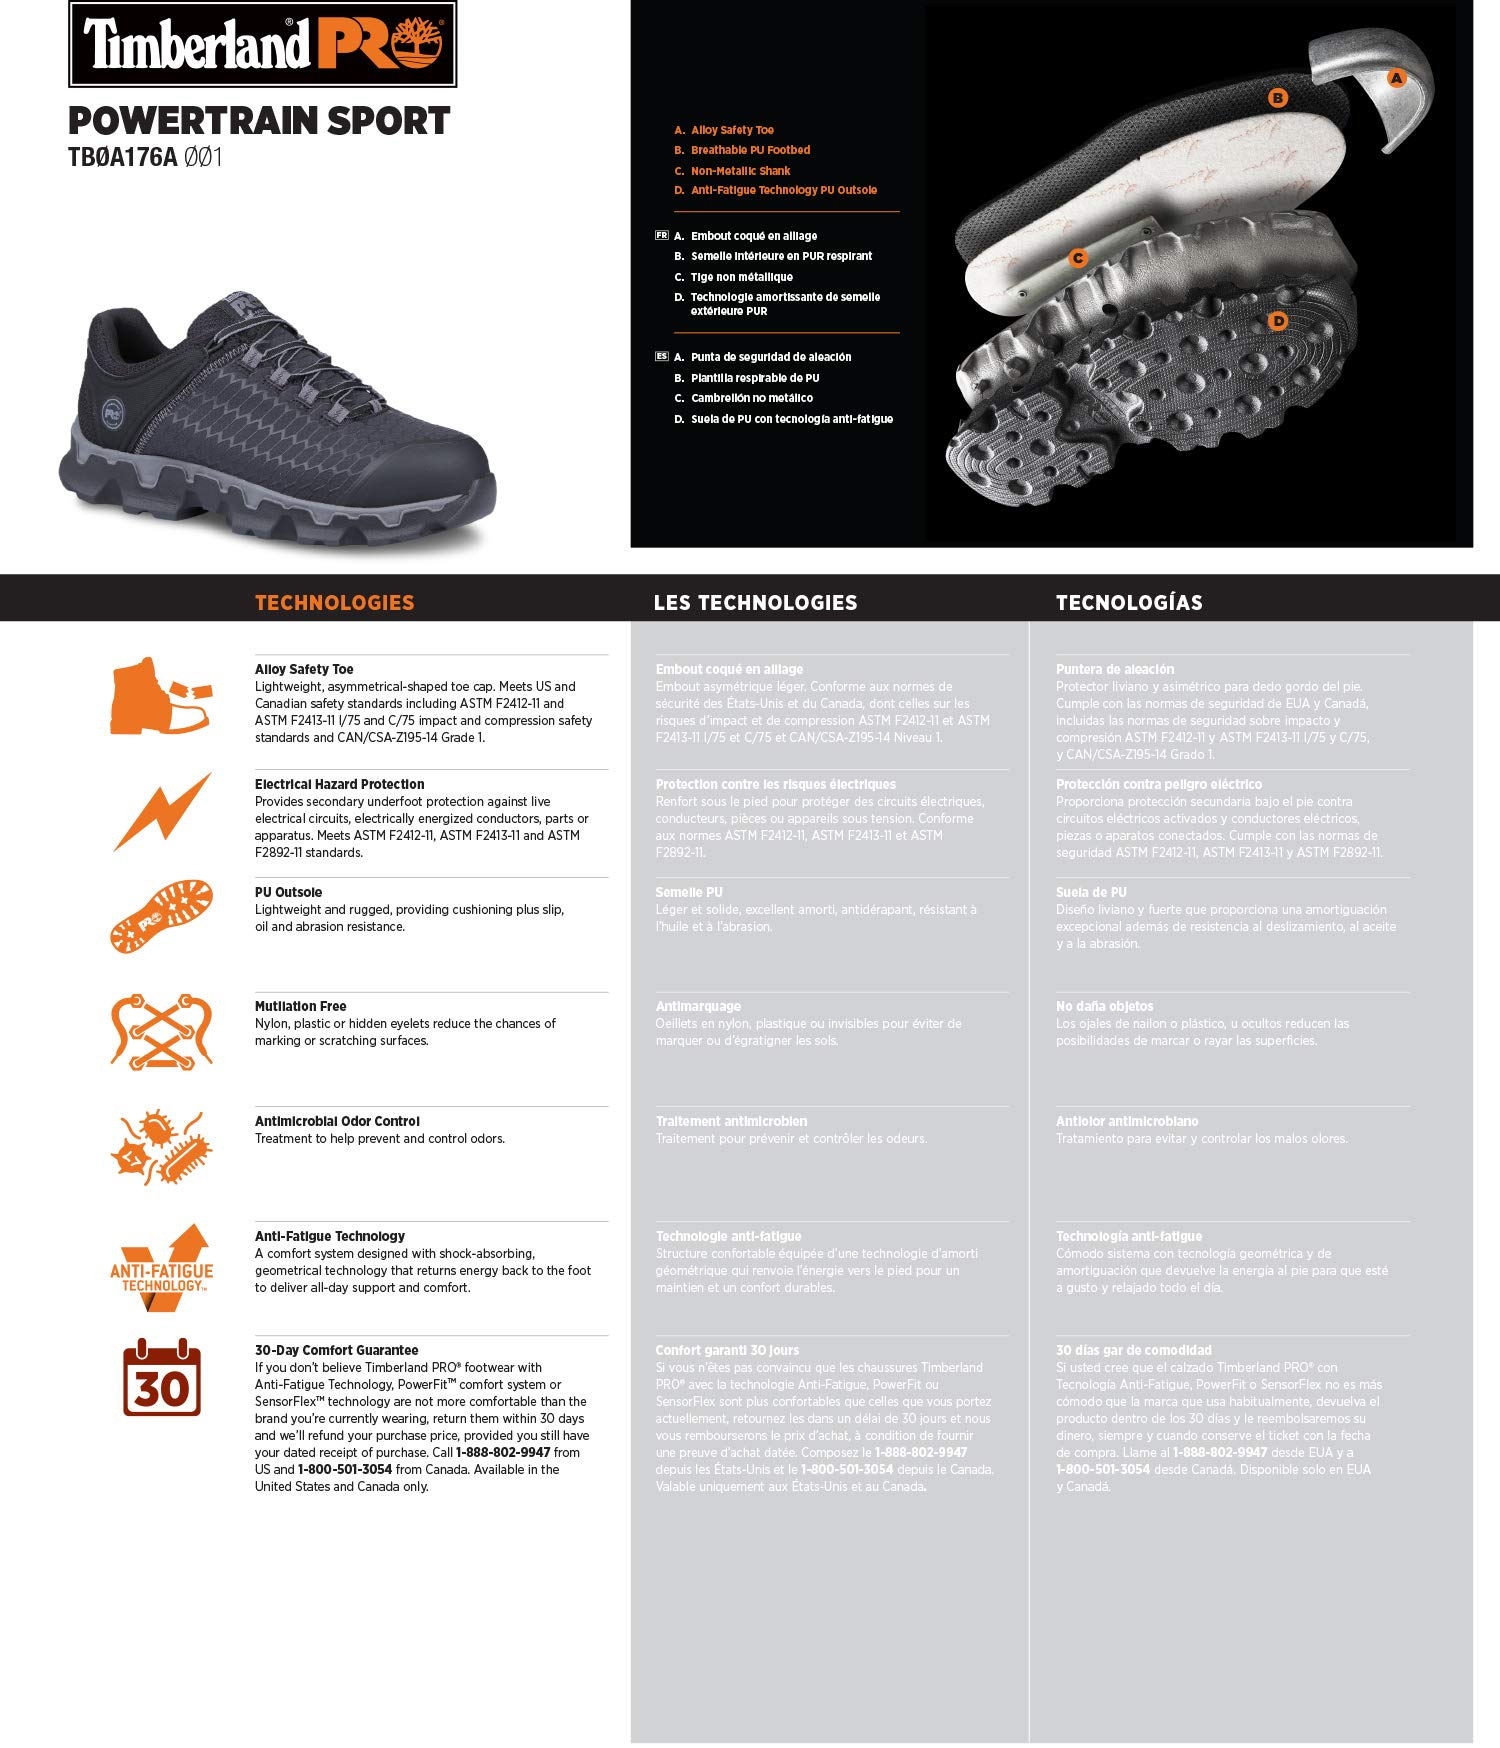 17fa34095a9f The inner mesh lining has an antimicrobial treatment to keep your feet  smelling fresh and feeling comfortable.